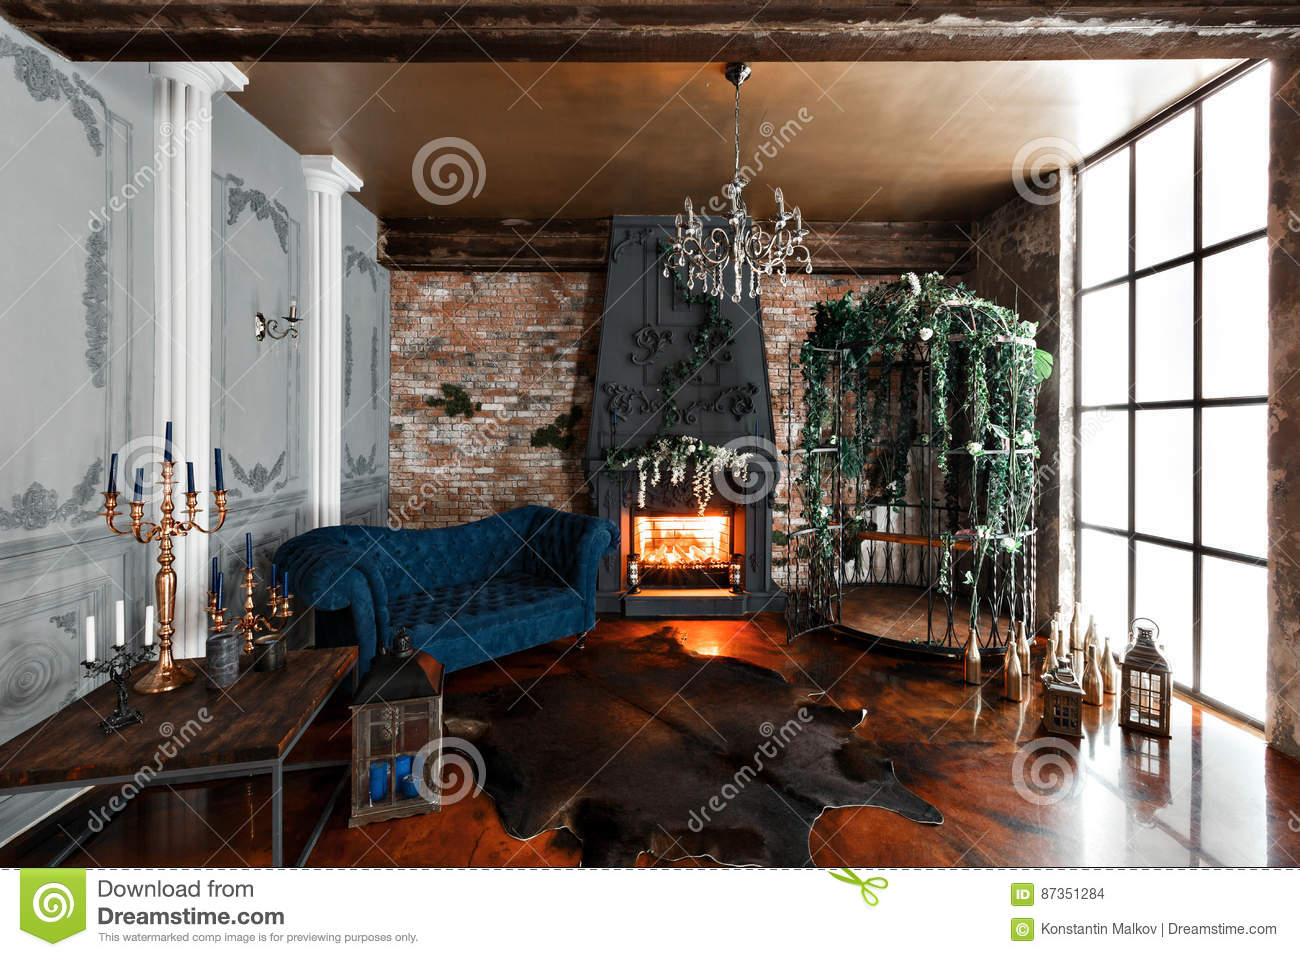 Interior with fireplace, candles, skin of cows, brick wall, large window and a metal cell of a loft, living room, coffee